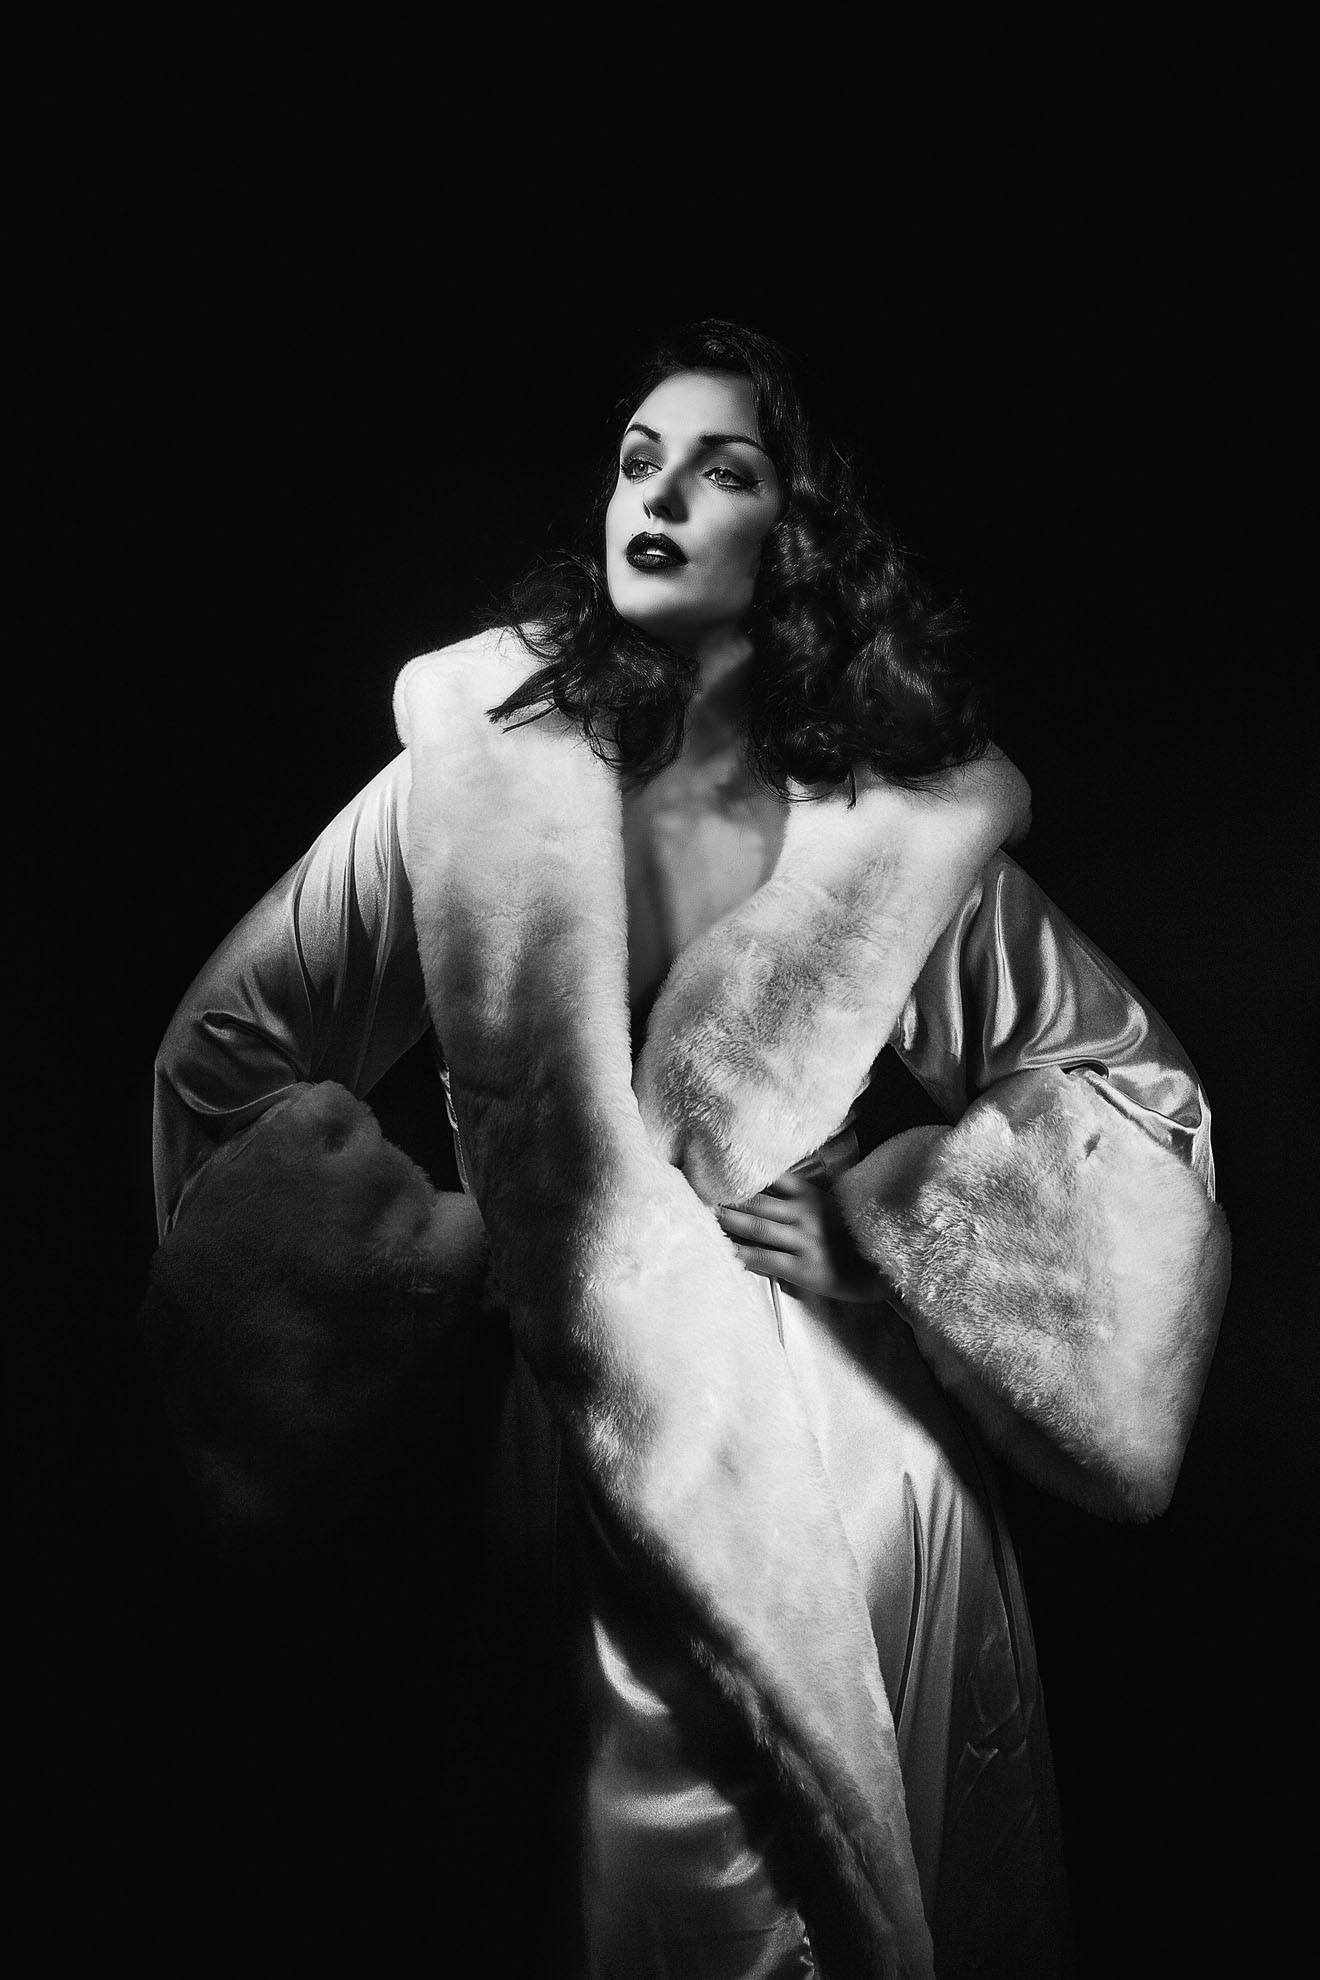 Audrey_retro_fur dressLOW.jpg